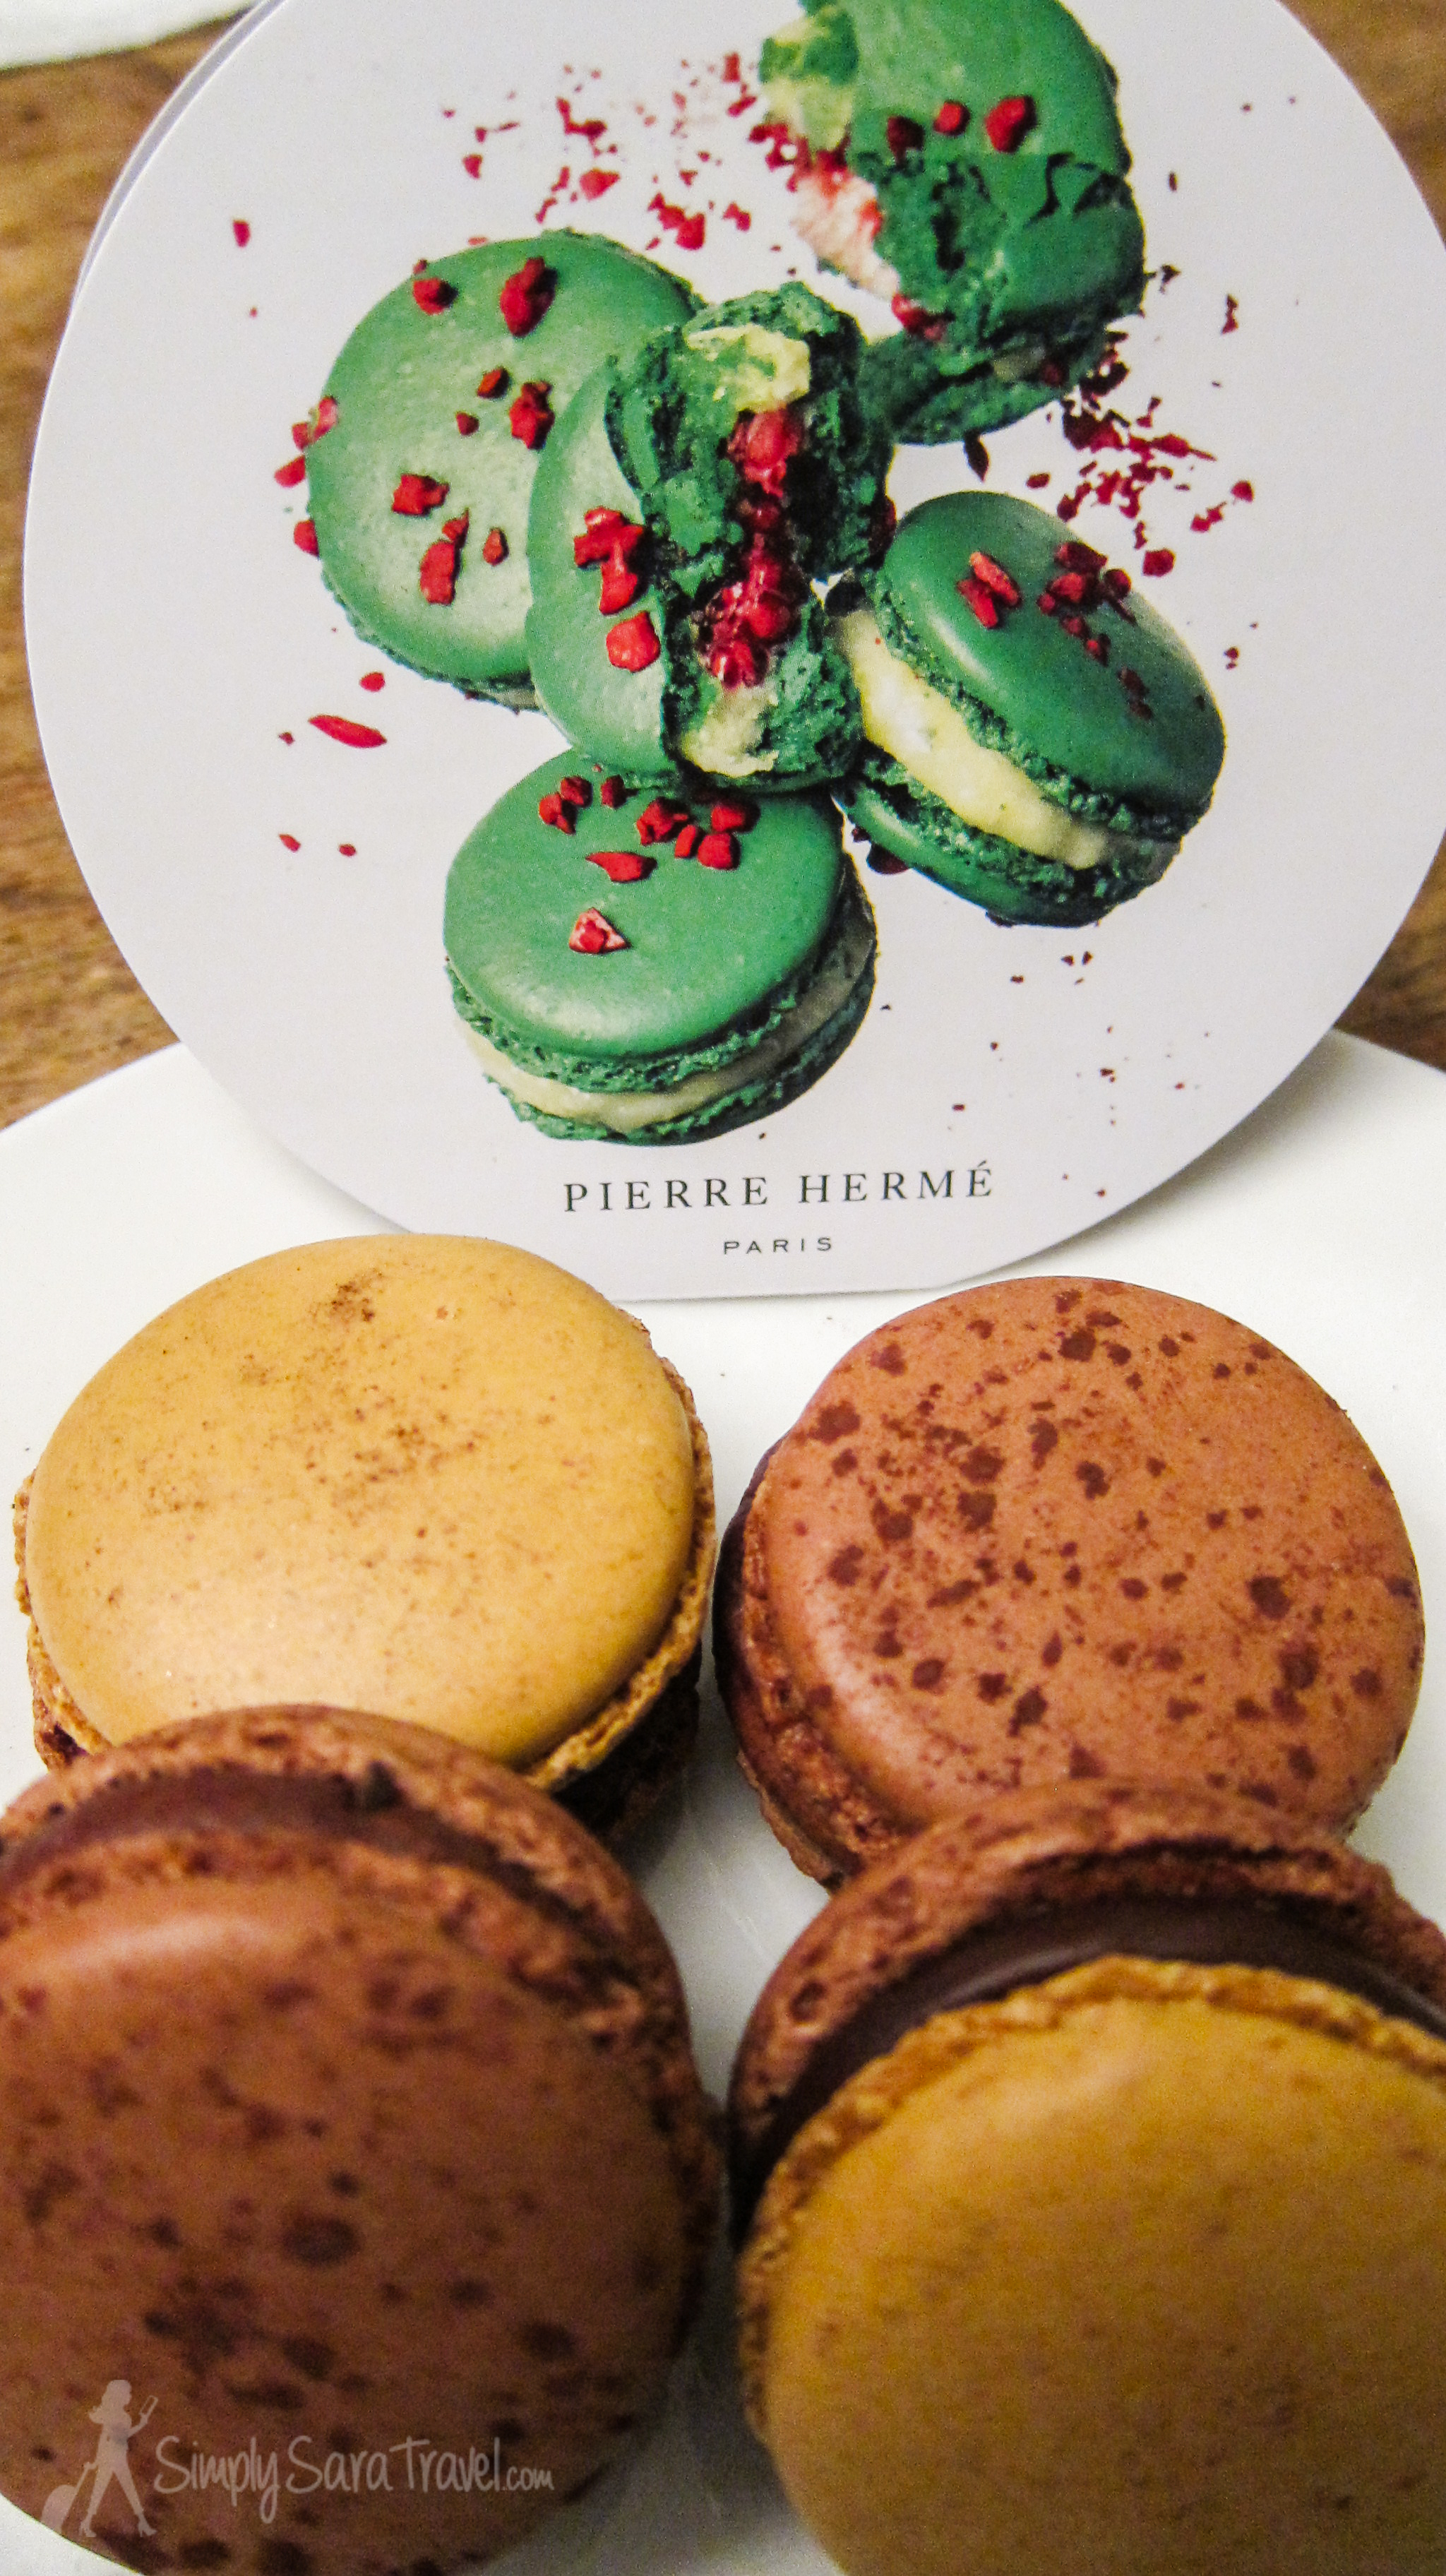 Macarons from Pierre Herme